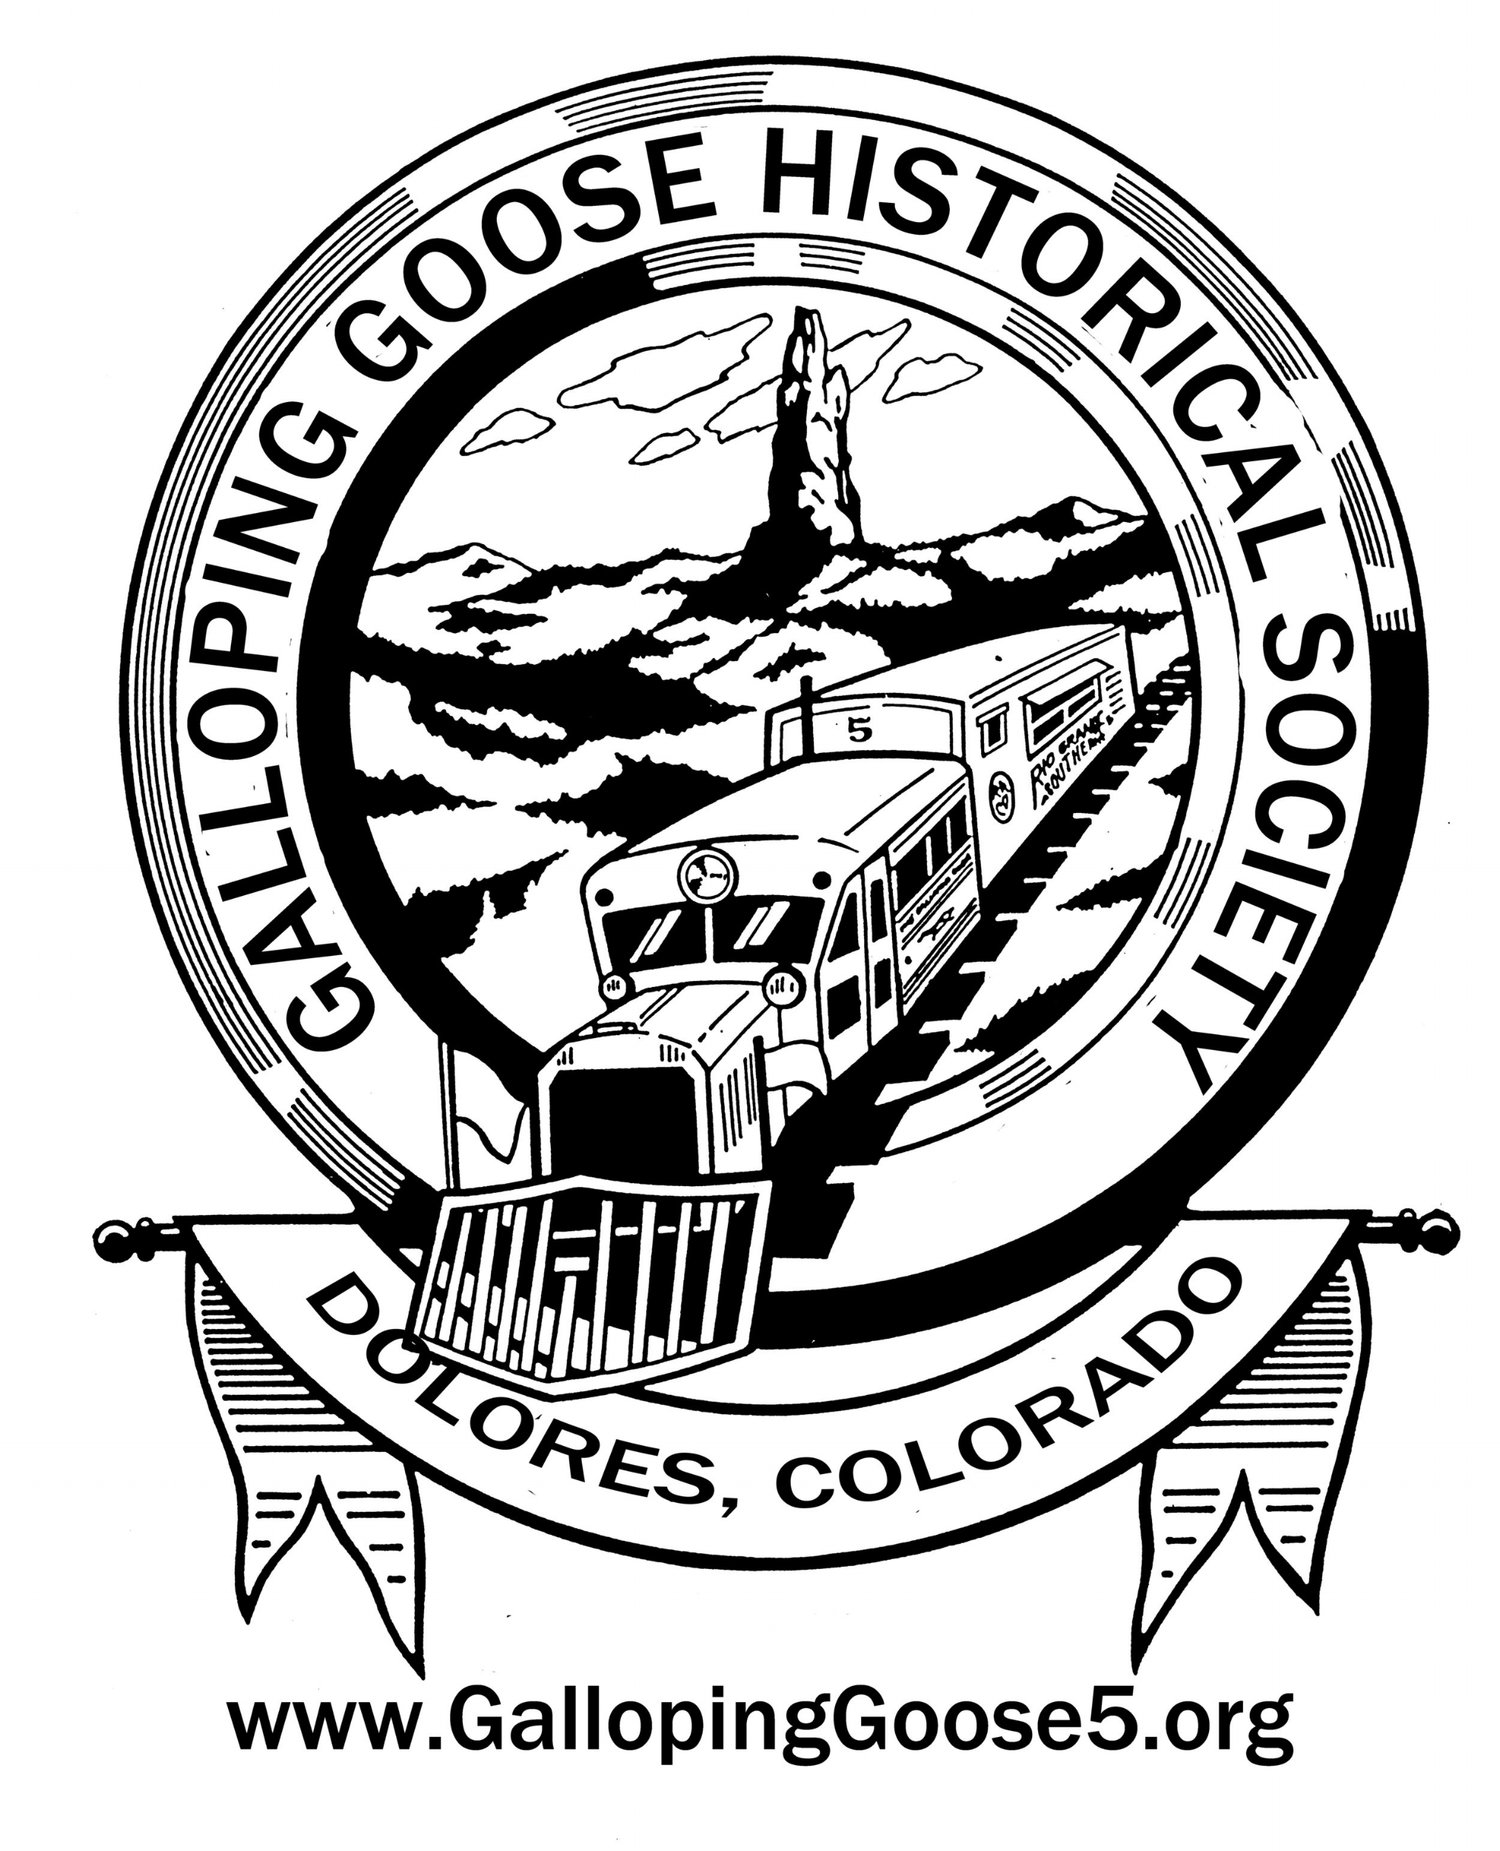 archive photos galloping goose historical society of dolores co